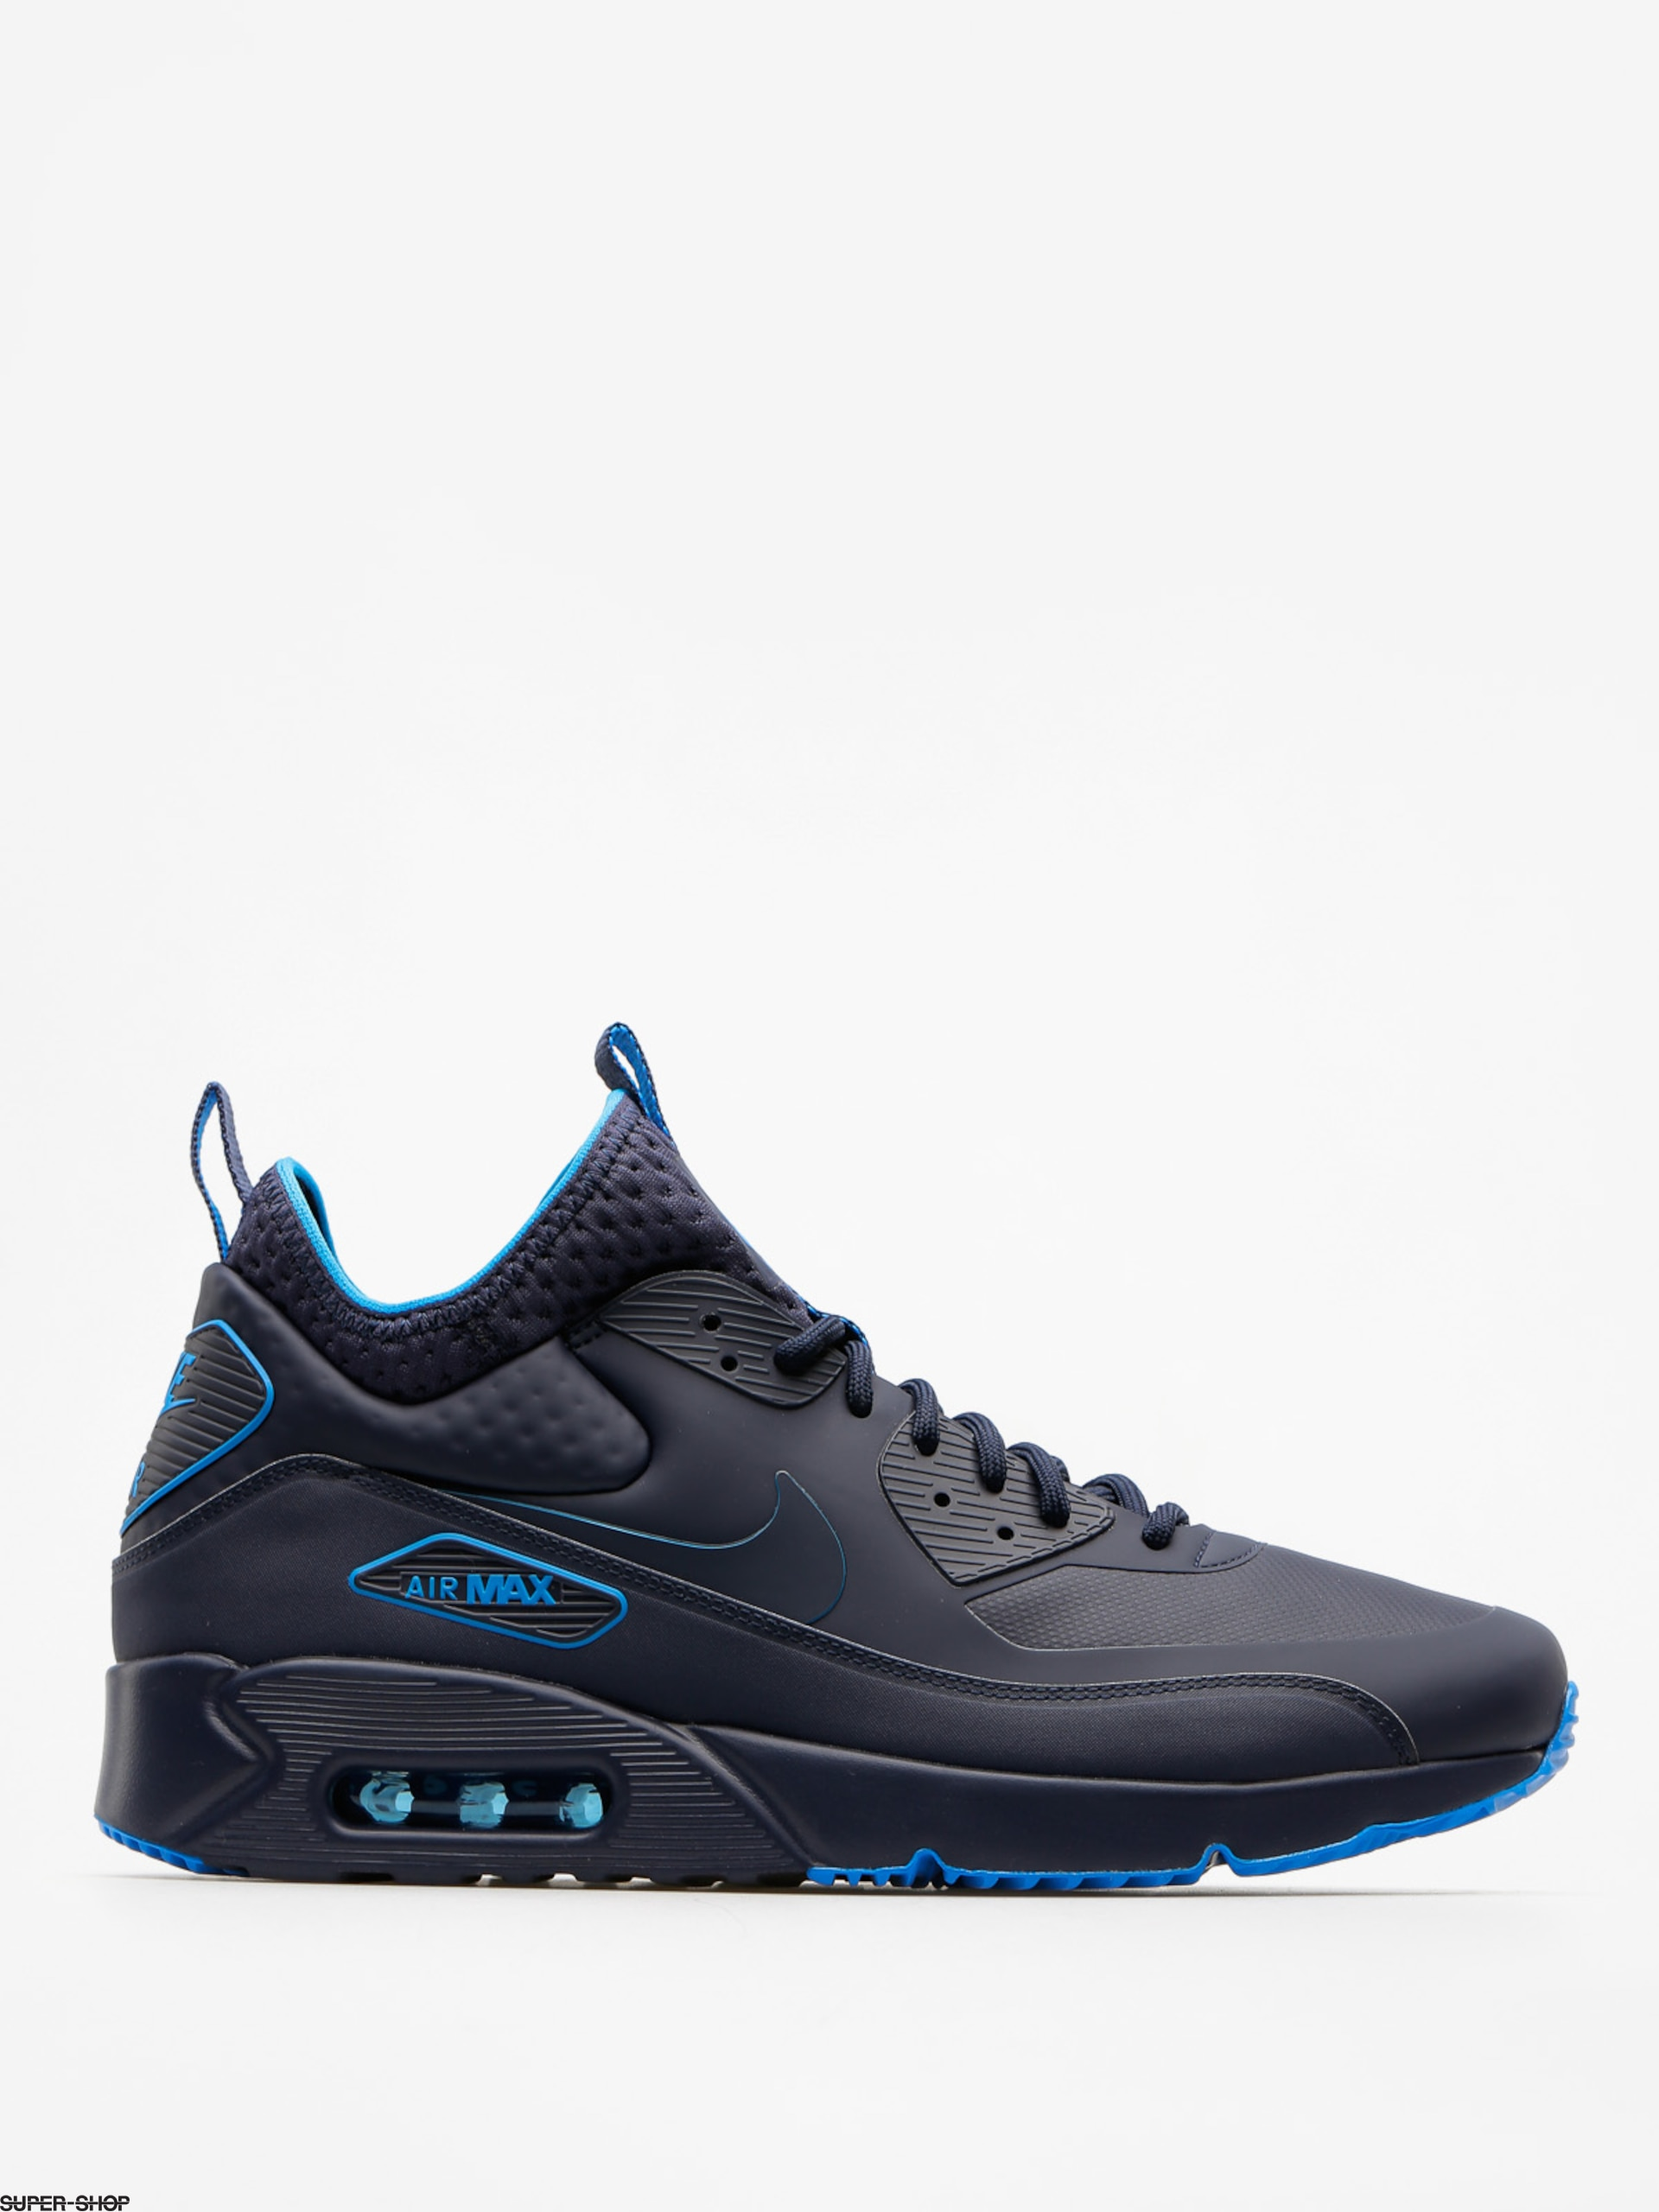 Nike Shoes Air Max 90 Ultra Mid Winter Se (obsidian/obsidian thunder blue)